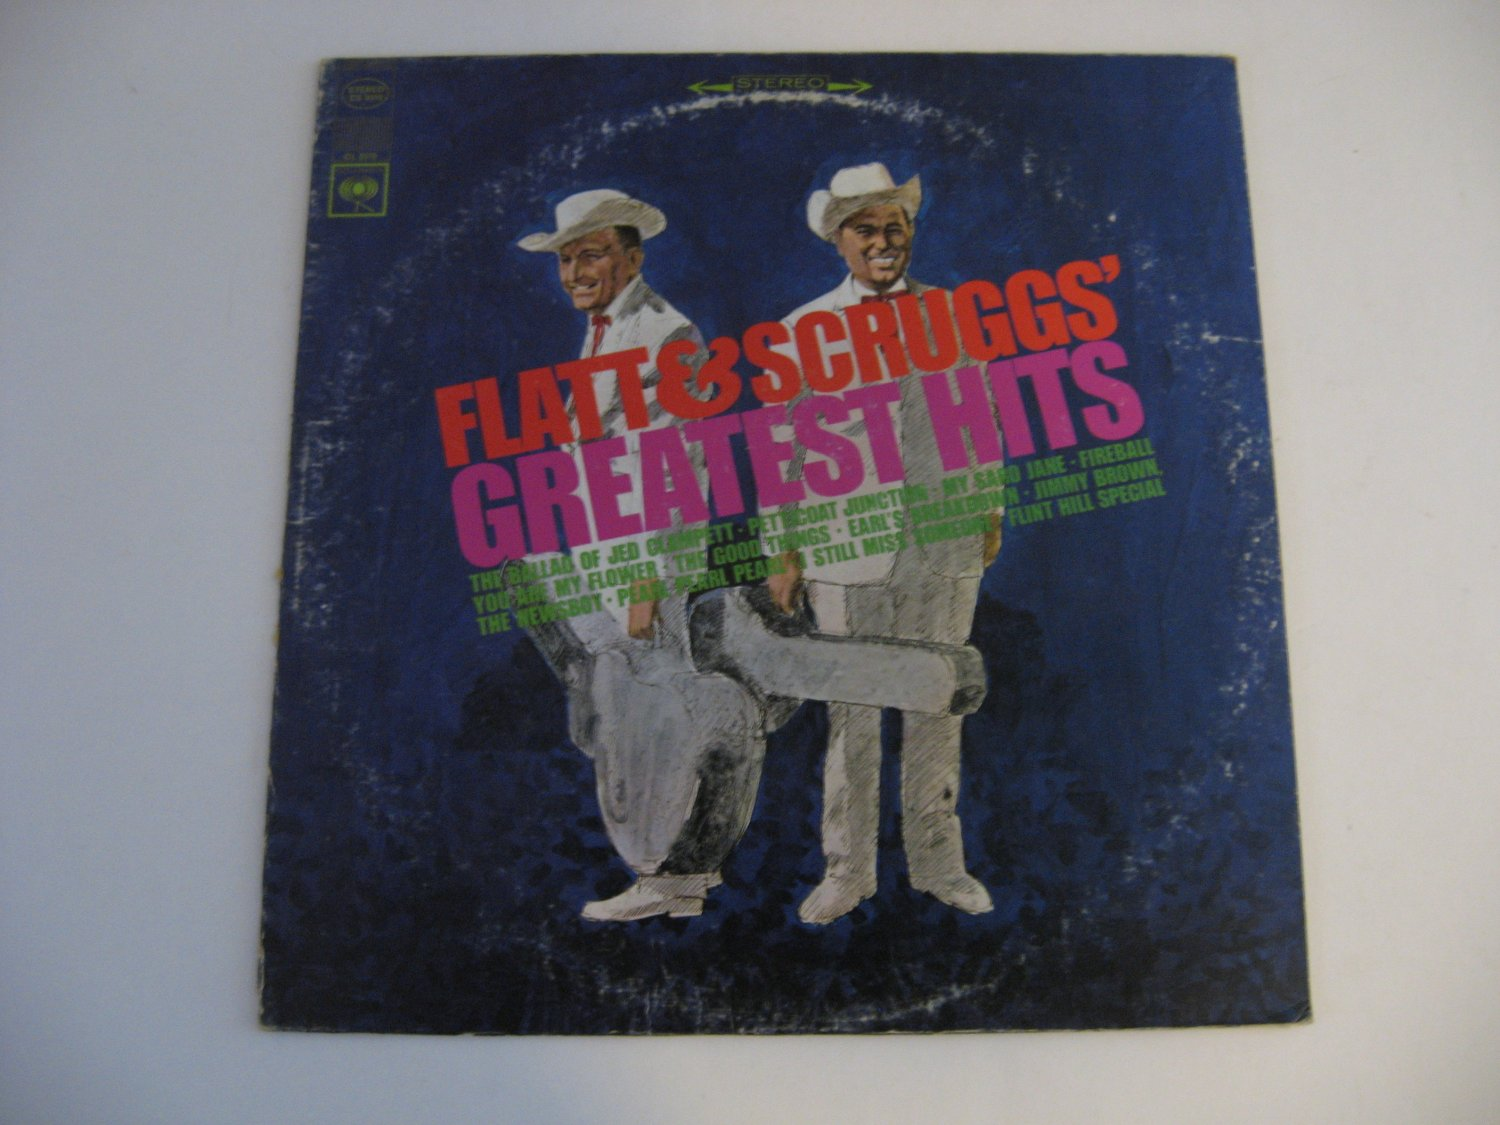 Flatt & Scruggs - Greatest Hits - Circa 1966